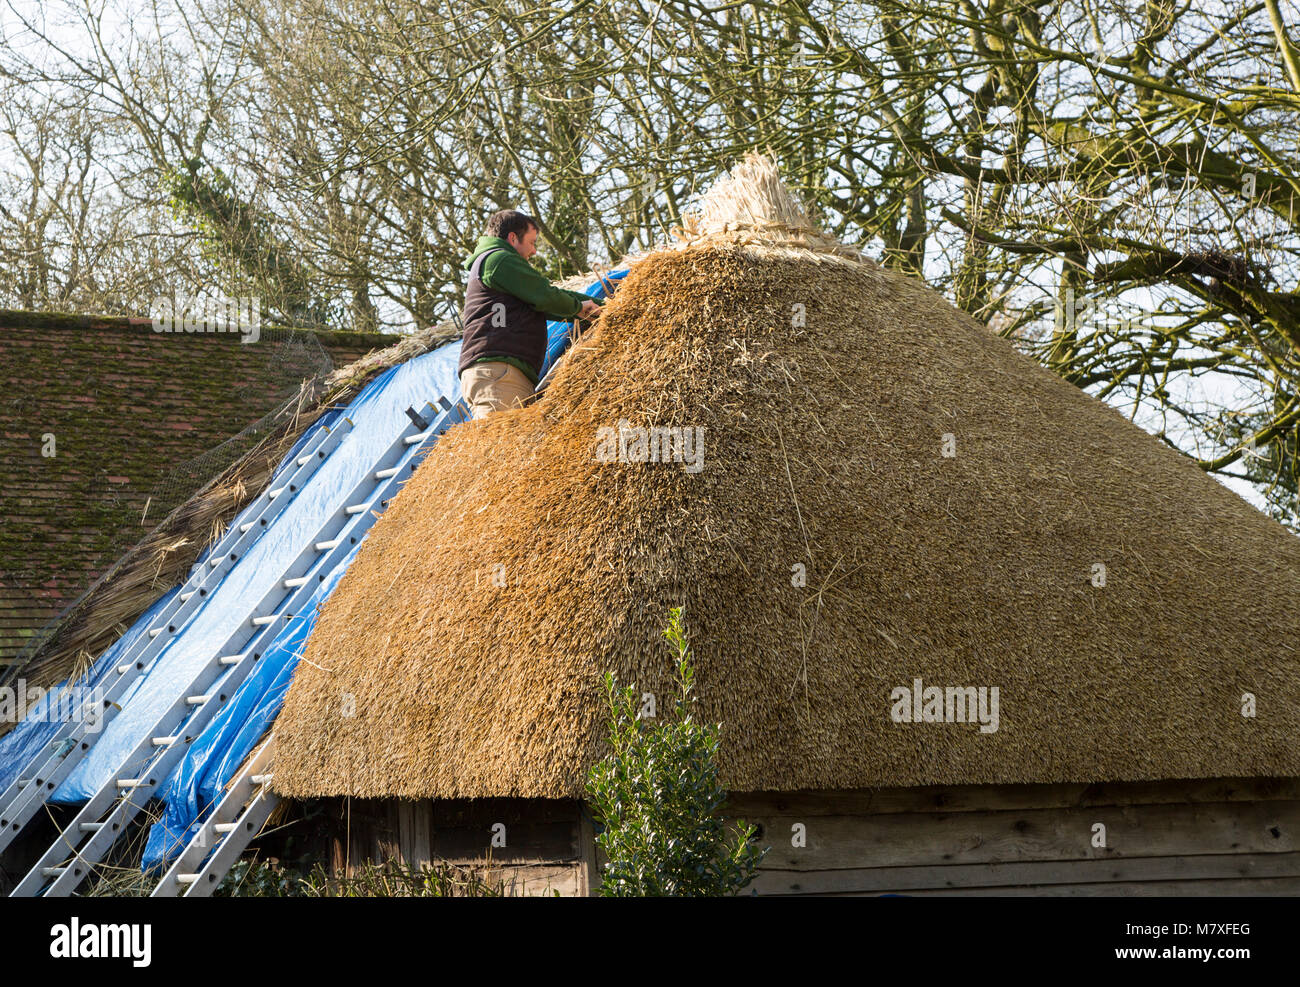 Thatcher working on roof of house, Alton Priors, Wiltshire, England, UK - Stock Image